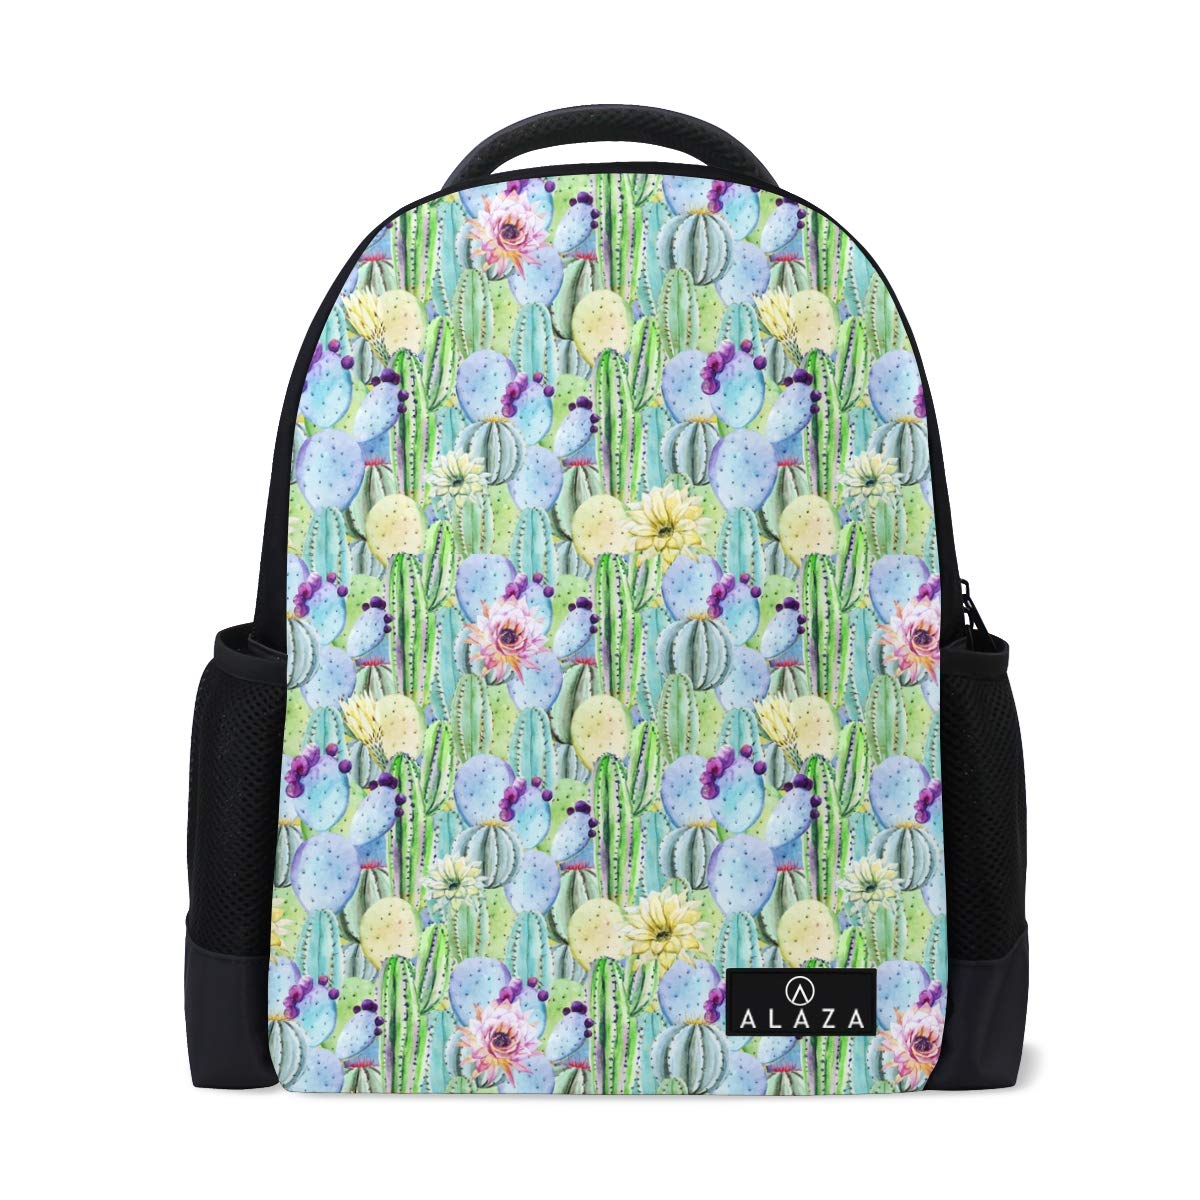 Leather Cactus Flowers Colorful Backpack Daypack Bag Women